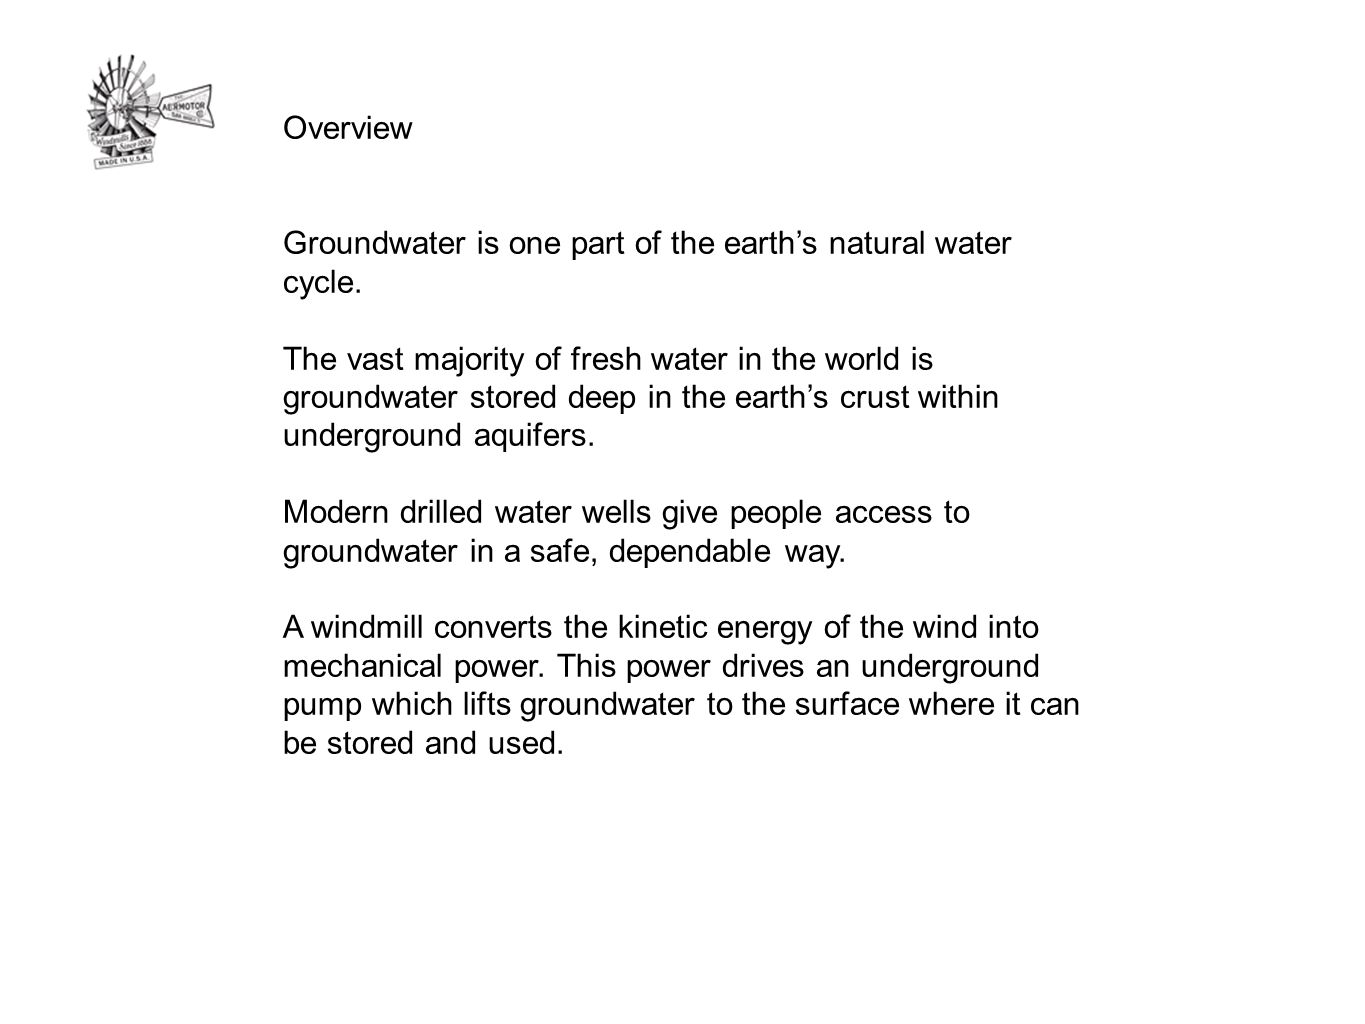 Overview Groundwater is one part of the earth's natural water cycle.